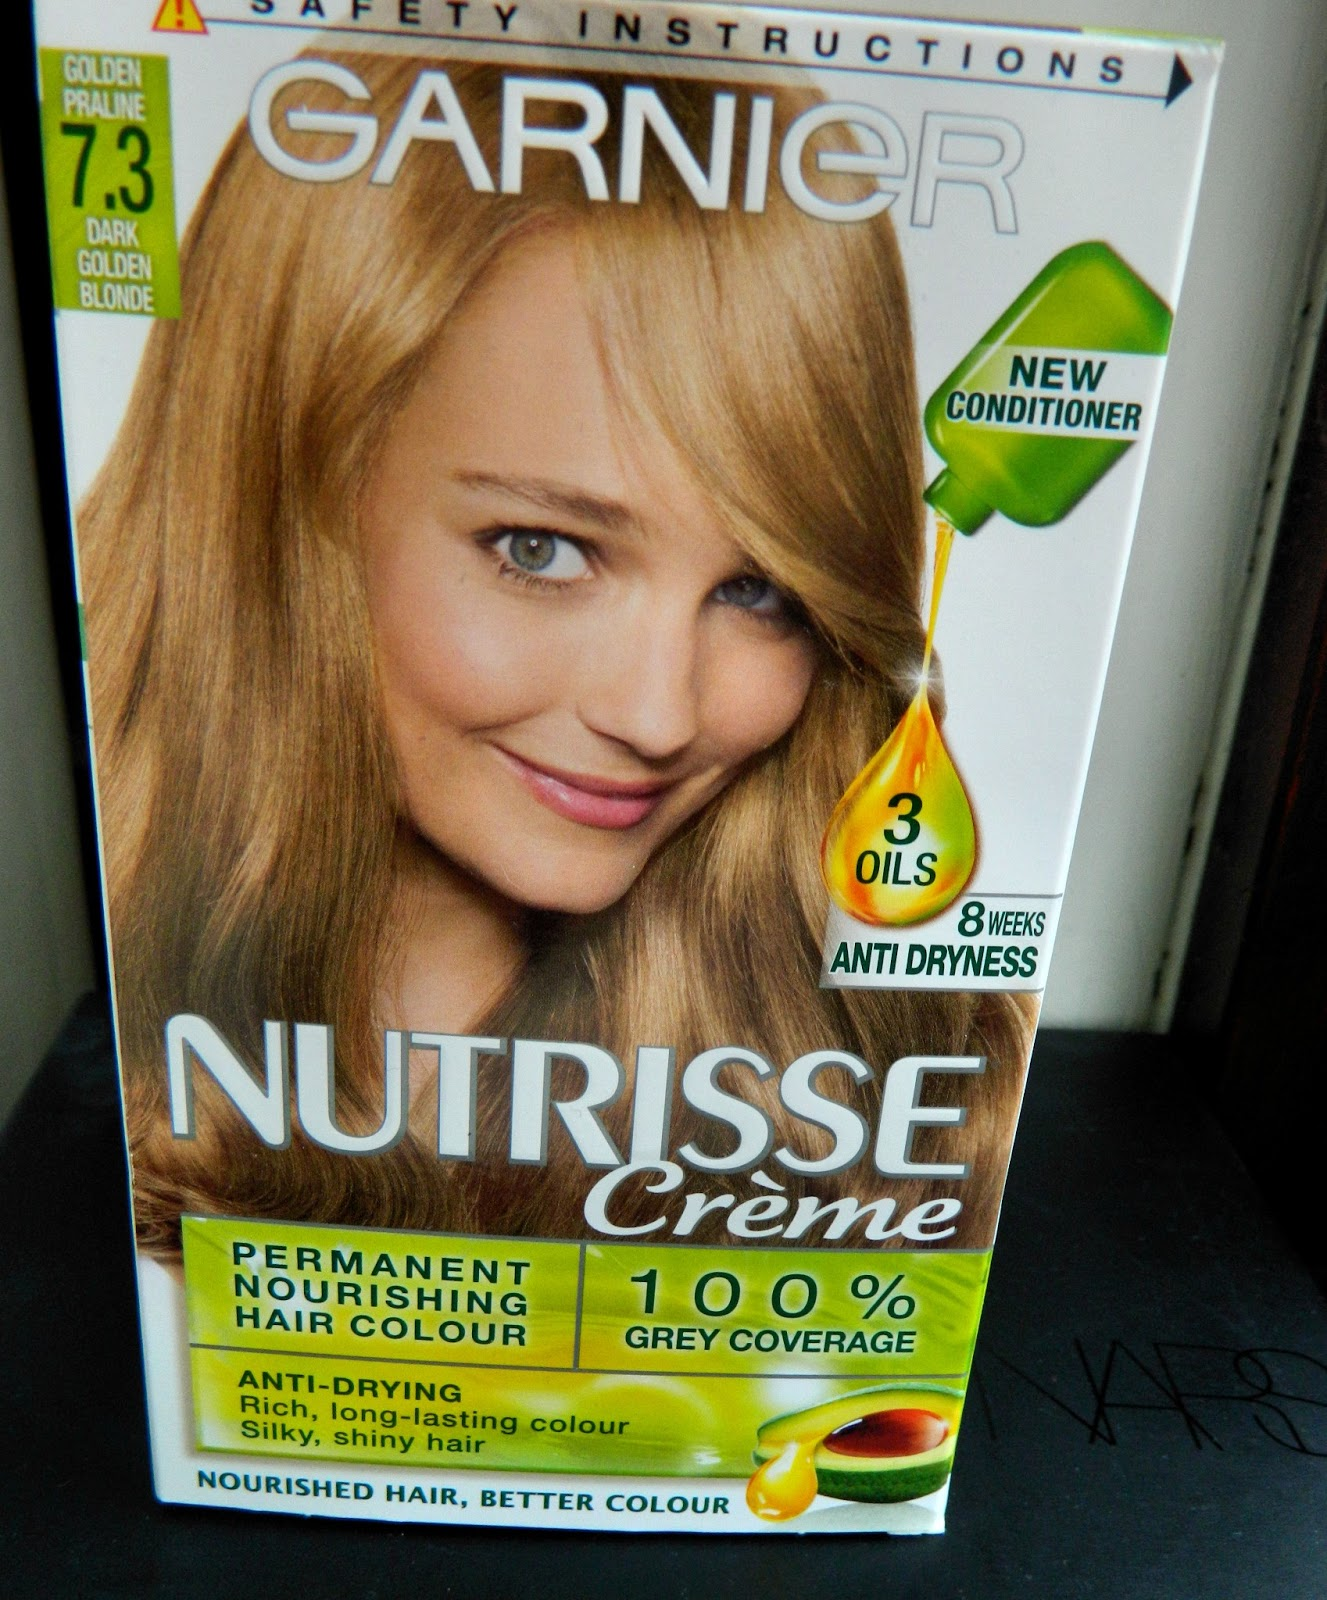 Dark Golden Brown Hair Color Garnier Natural Hair Dye 2018